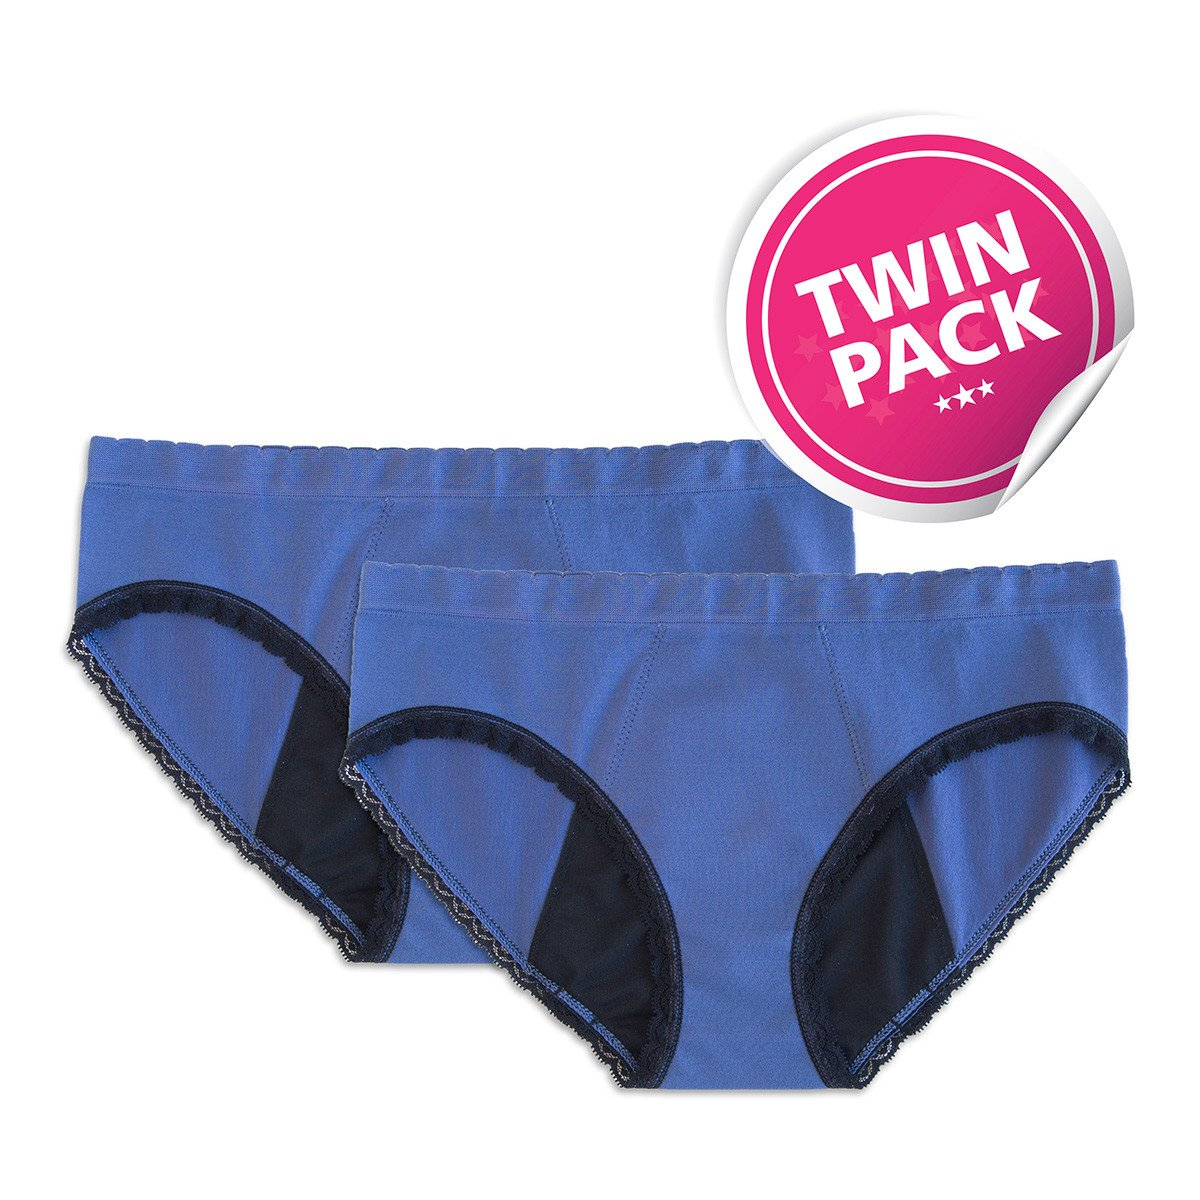 StainFree Reusable Period Panty - 2 Pack Blue Hipster (XS)